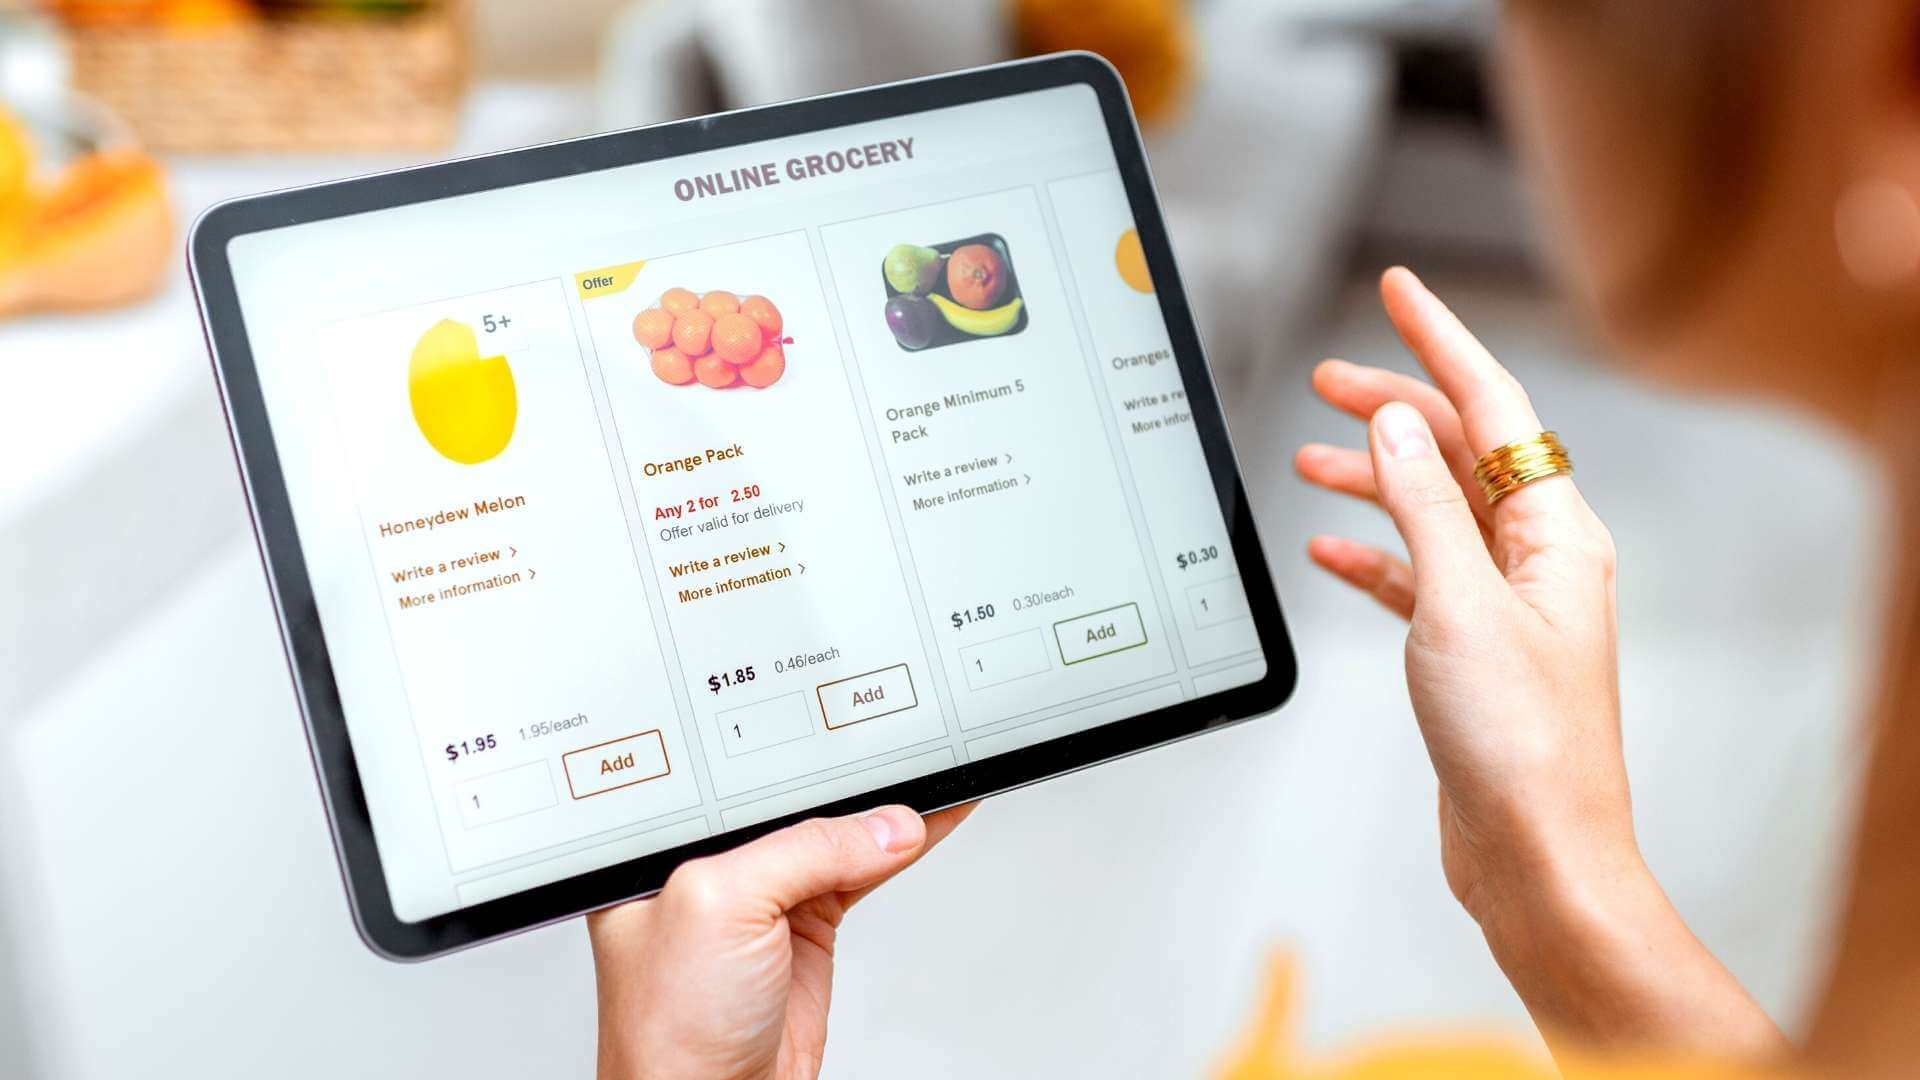 online groceries shopping from a tablet